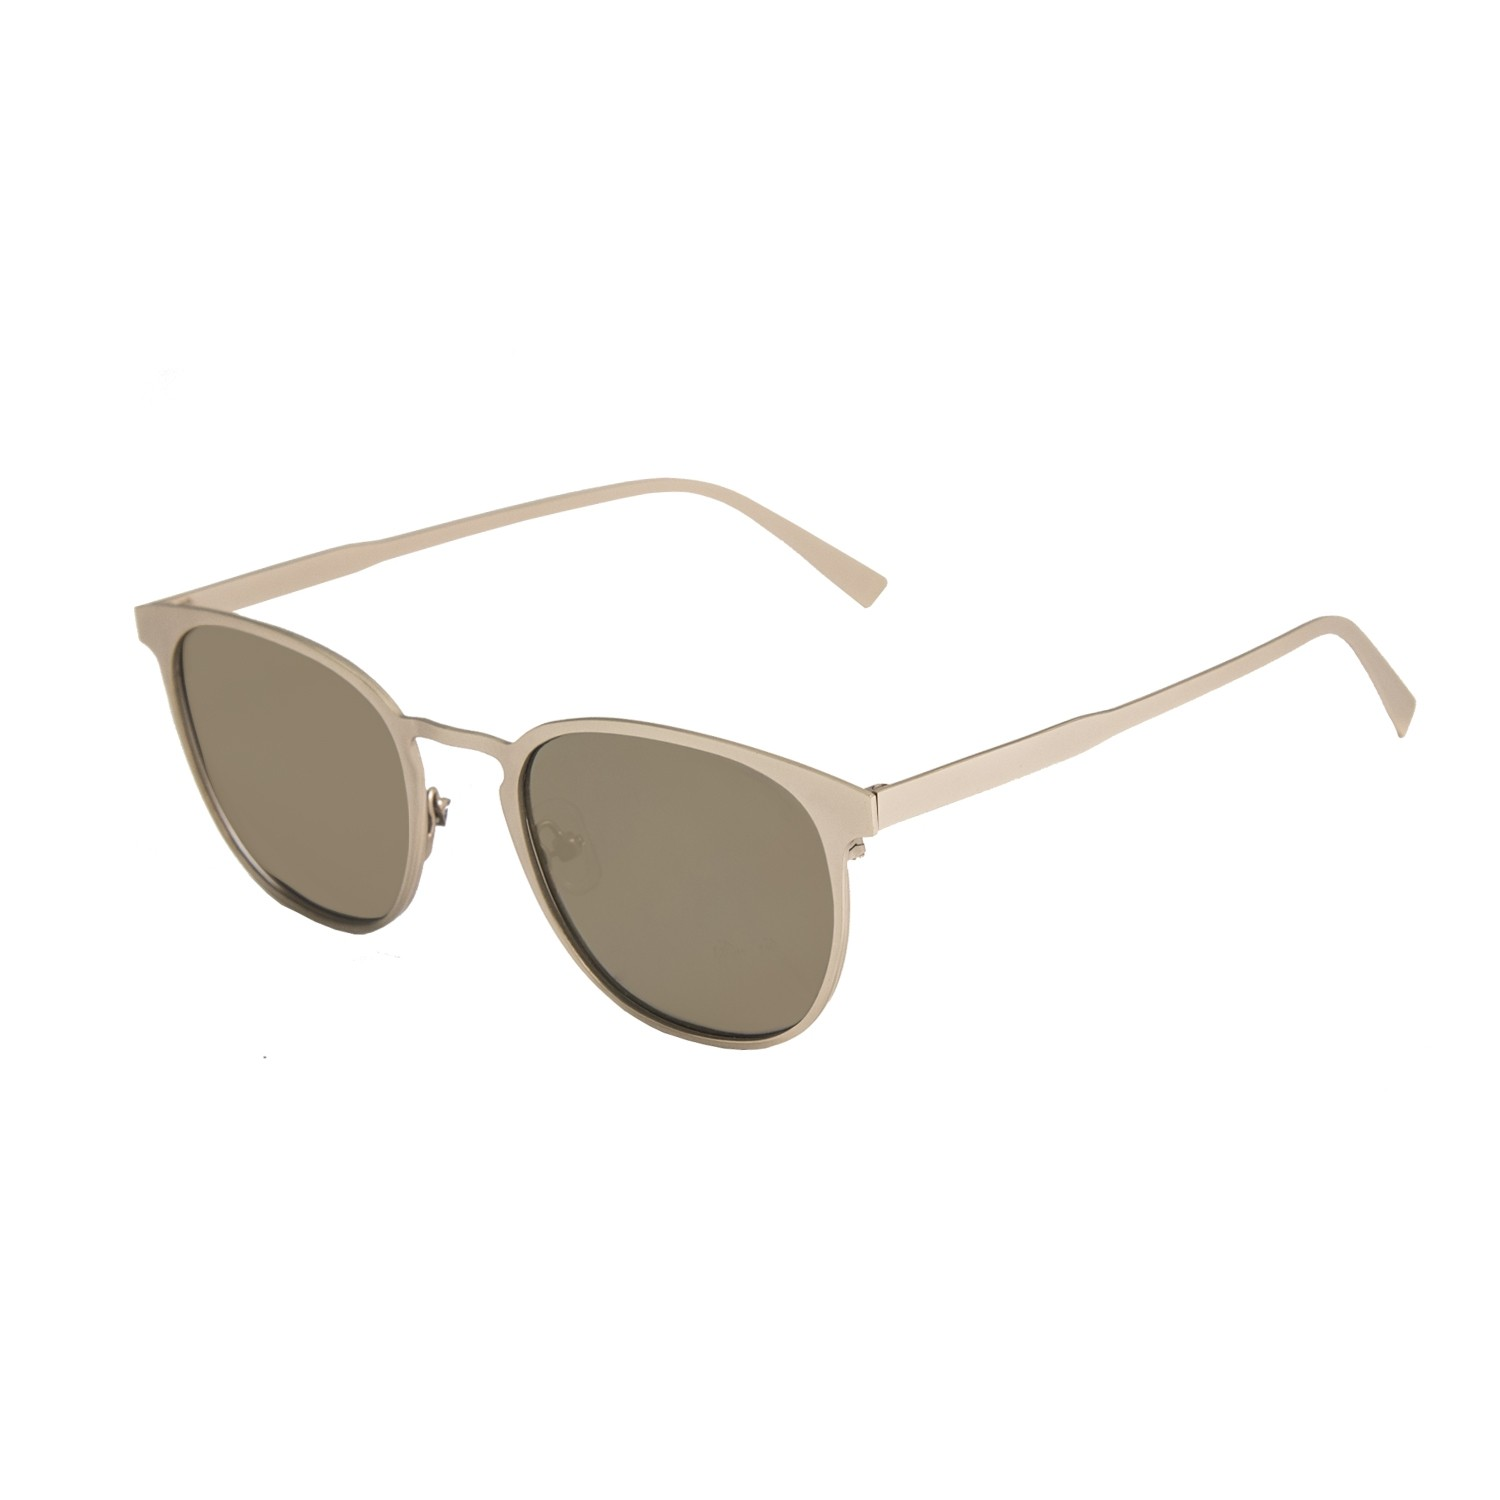 SHARON shiny gold frame with flat revo gold lens